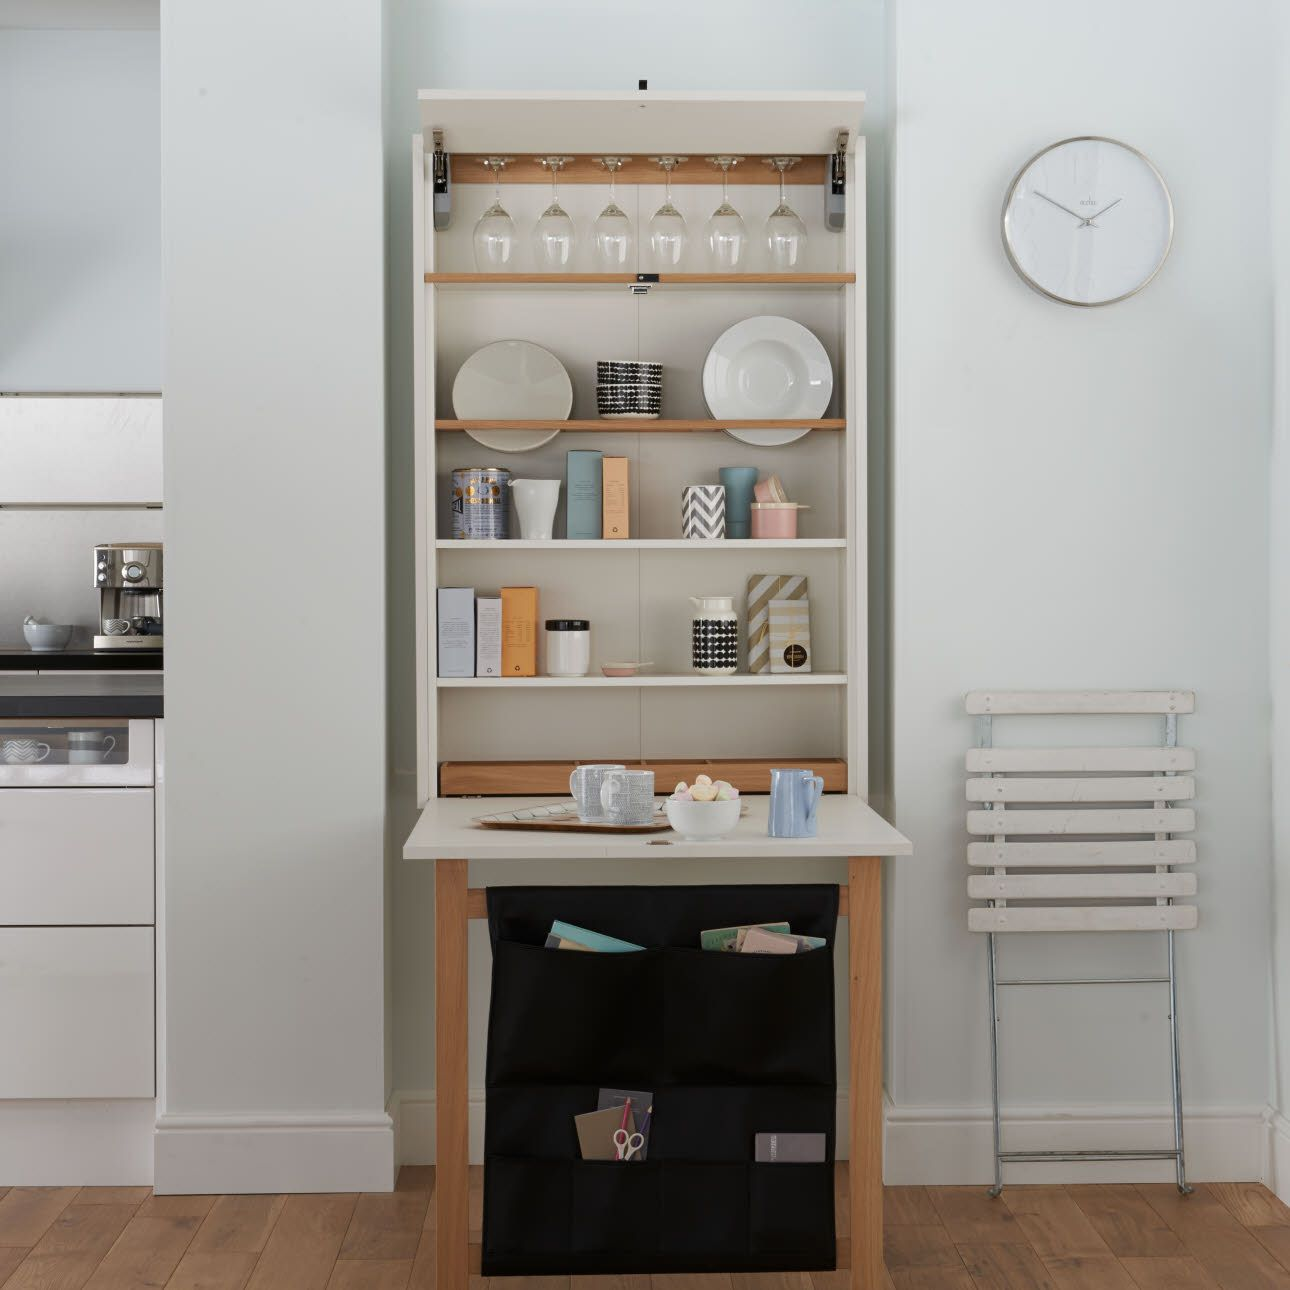 Table plus diy projects pinterest small spaces kitchens and